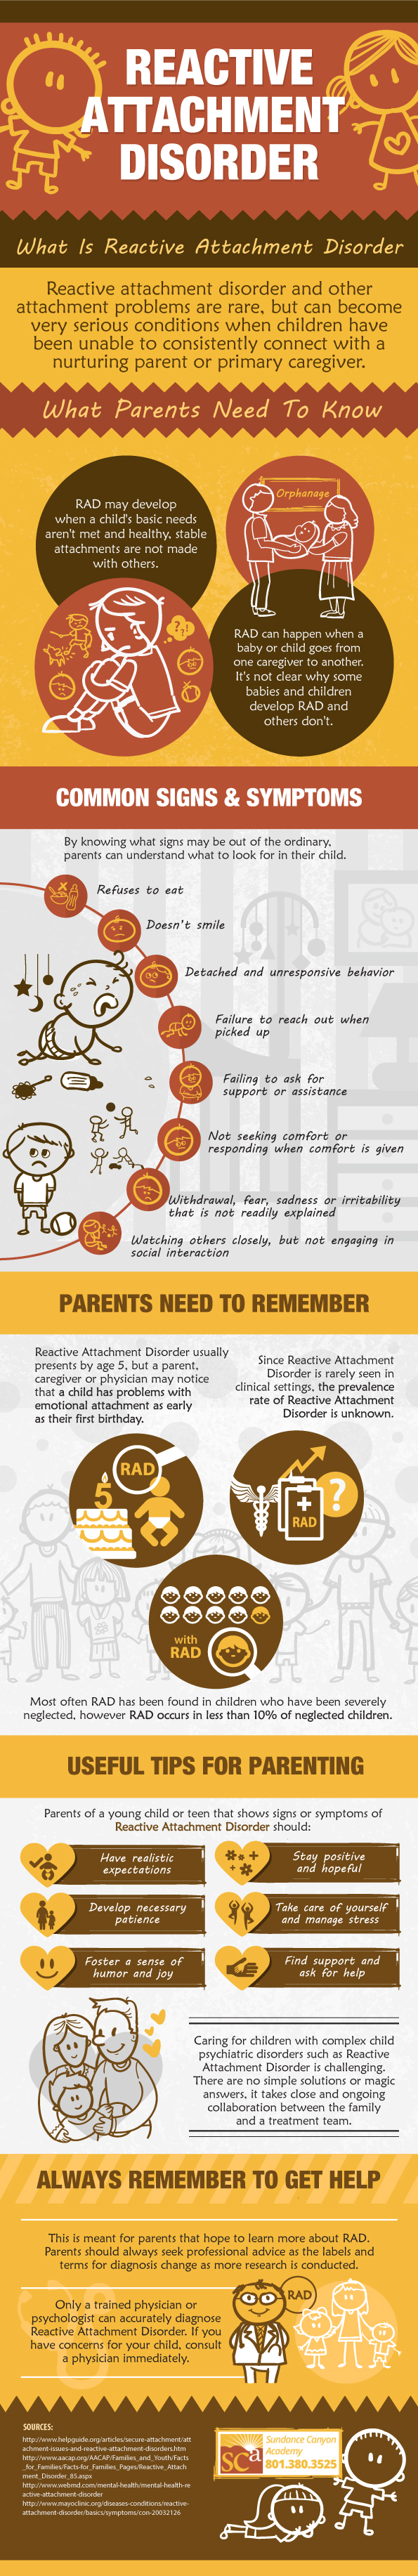 Reactive-Attachment-Disorder-Infographic-Final